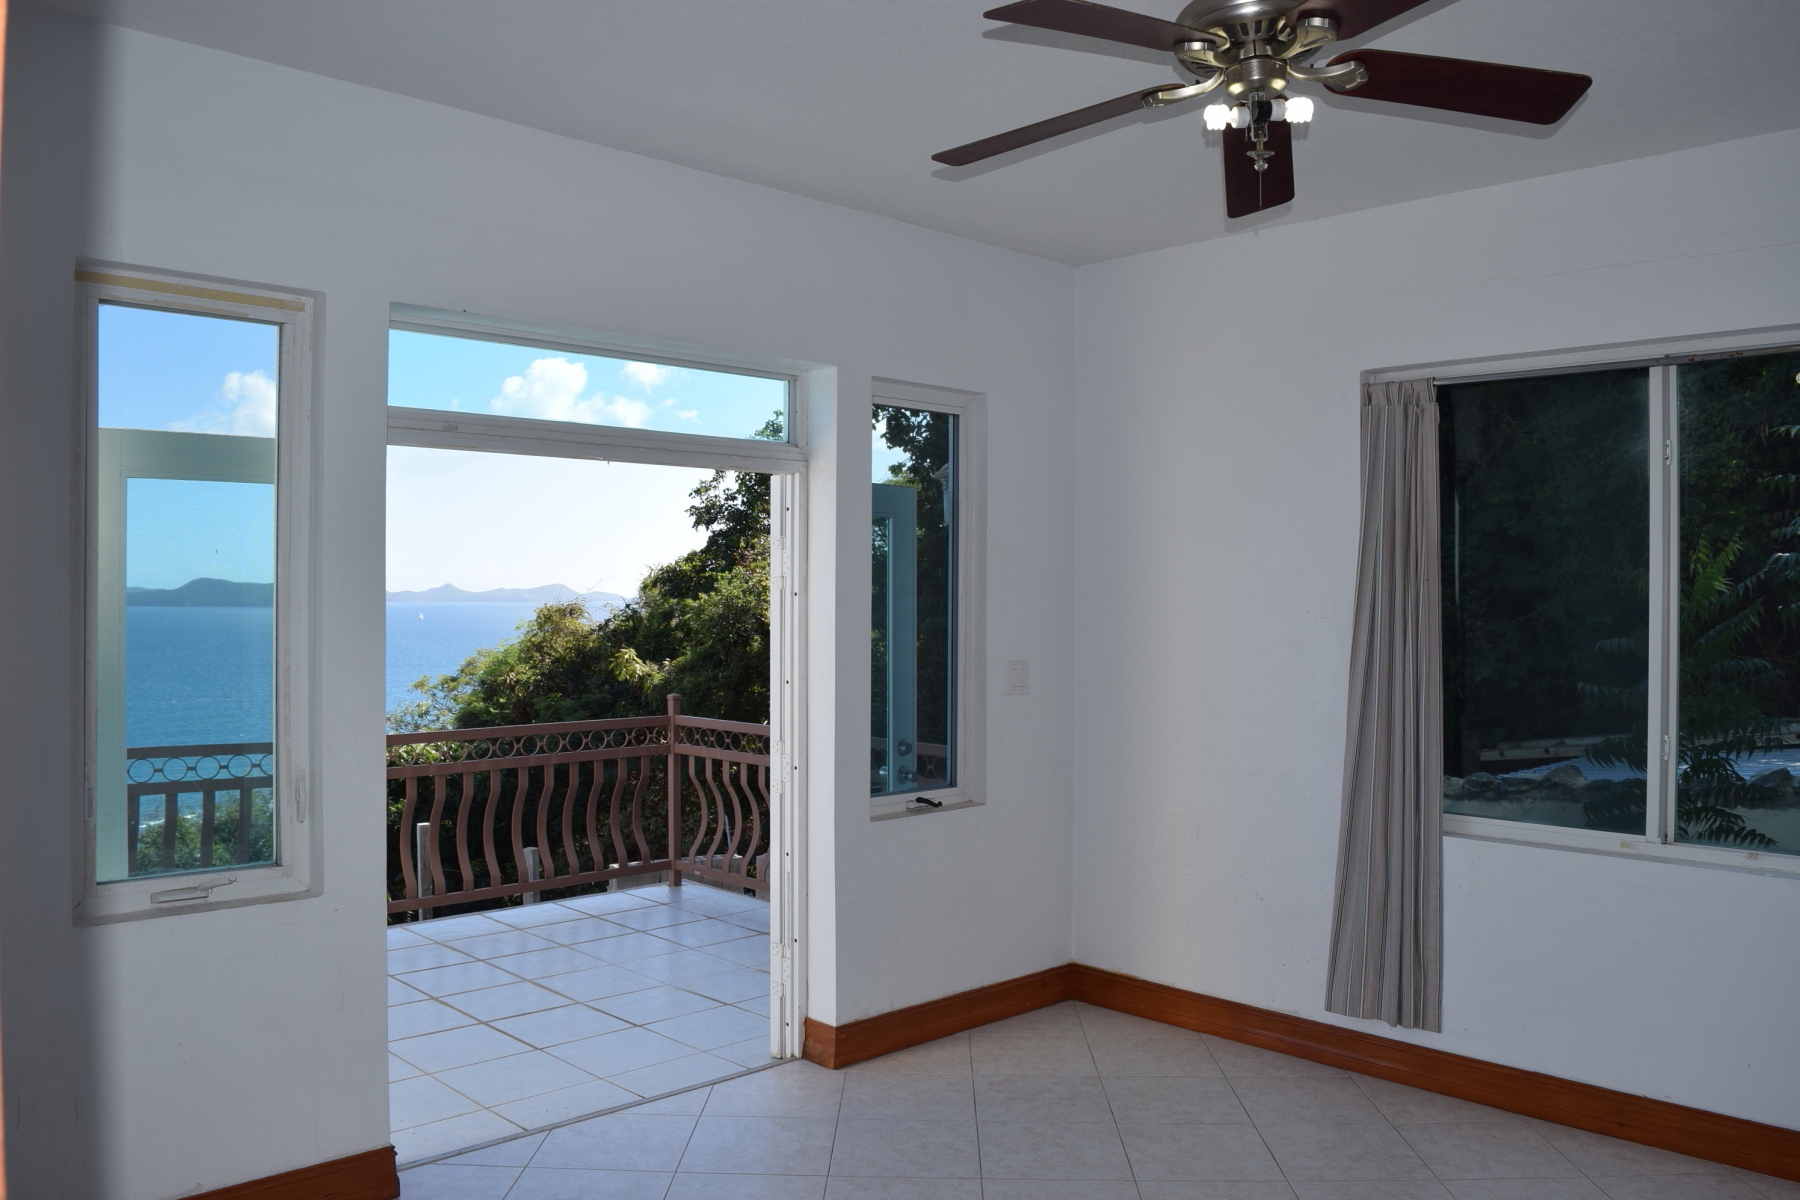 Additional photo for property listing at Channel Island Breezes Other Tortola, Τορτολα Βρετανικεσ Παρθενοι Νησοι